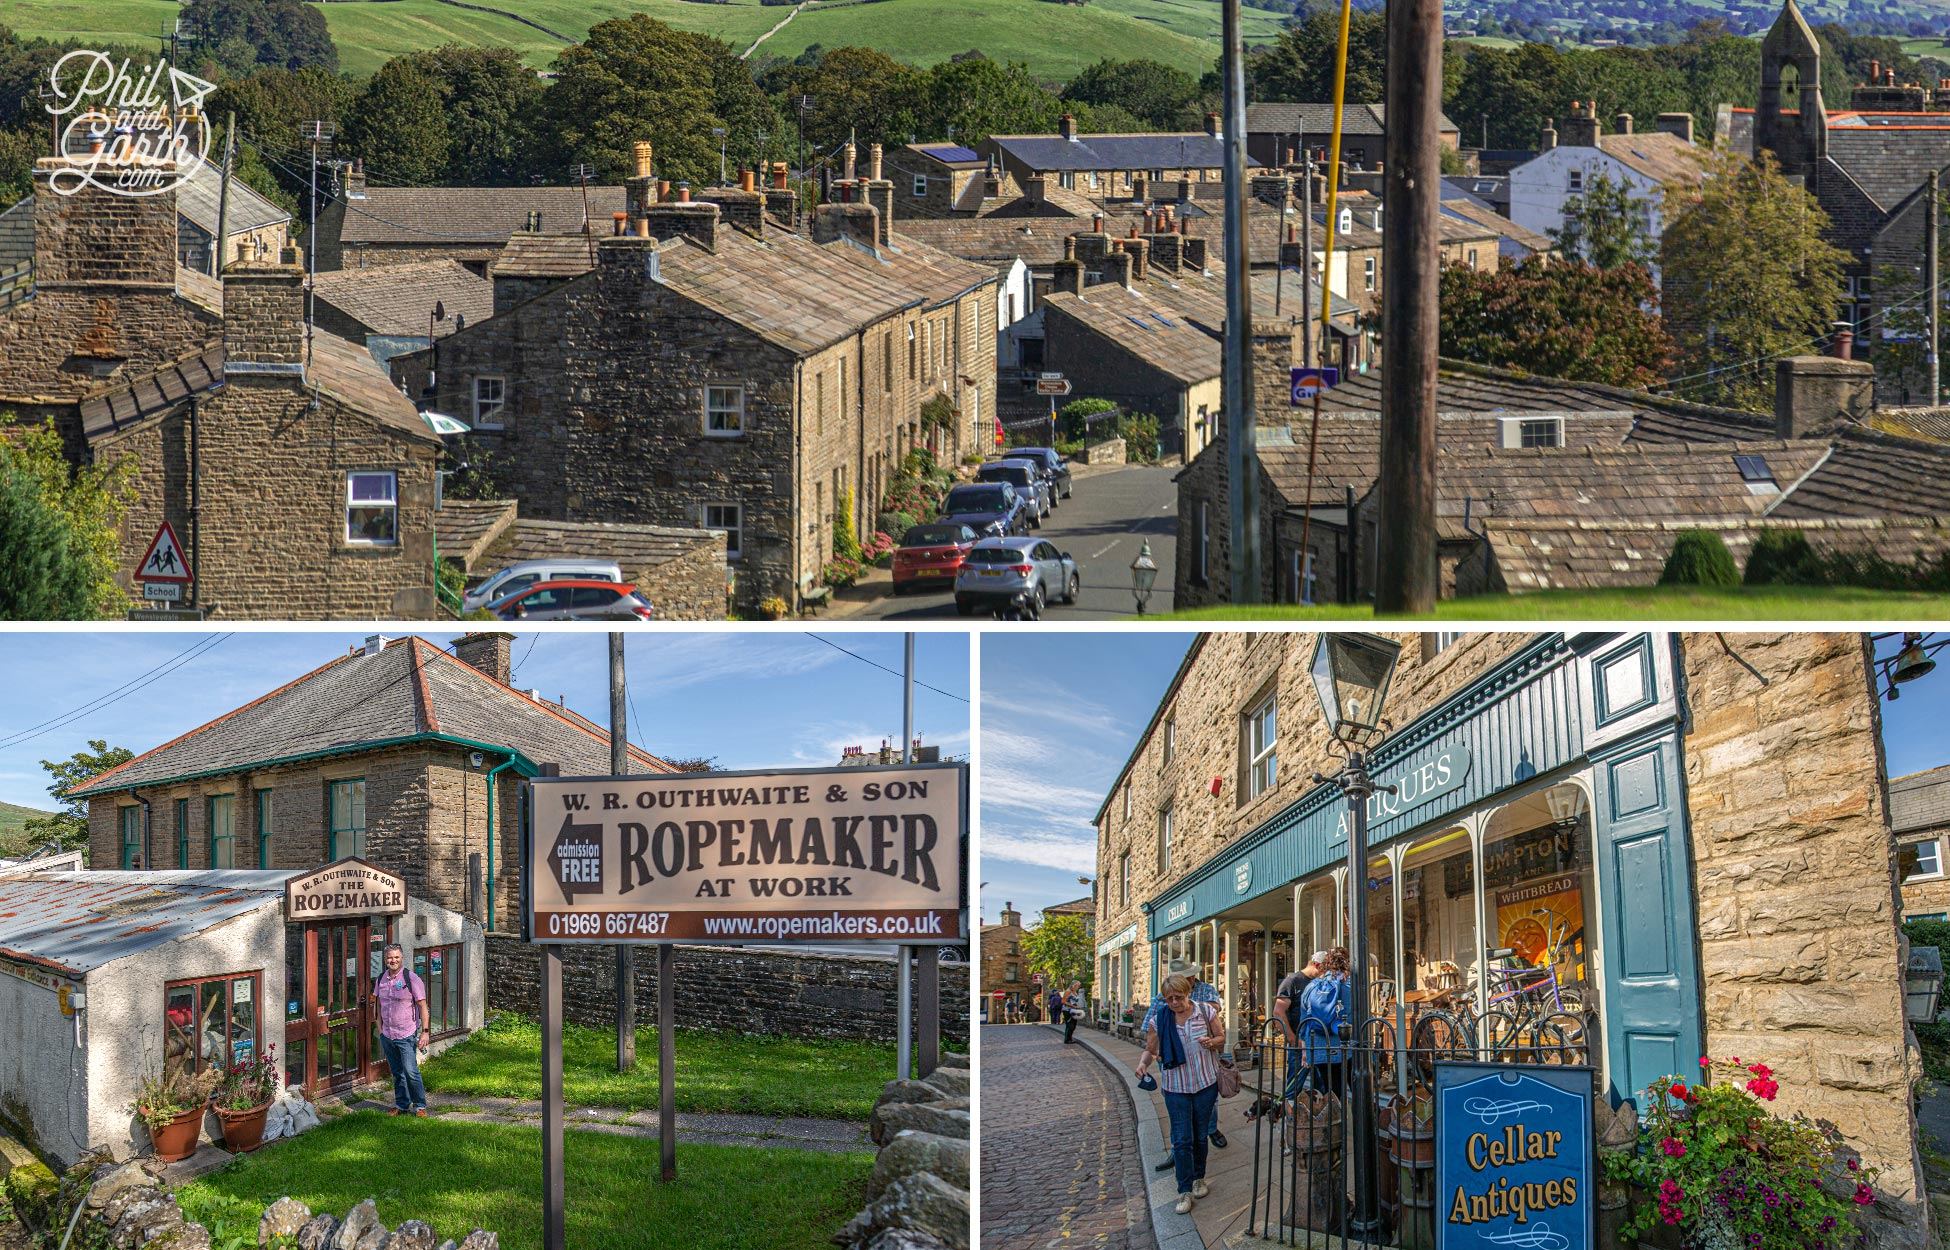 Hawes in Wensleydale has some nice shops to look around